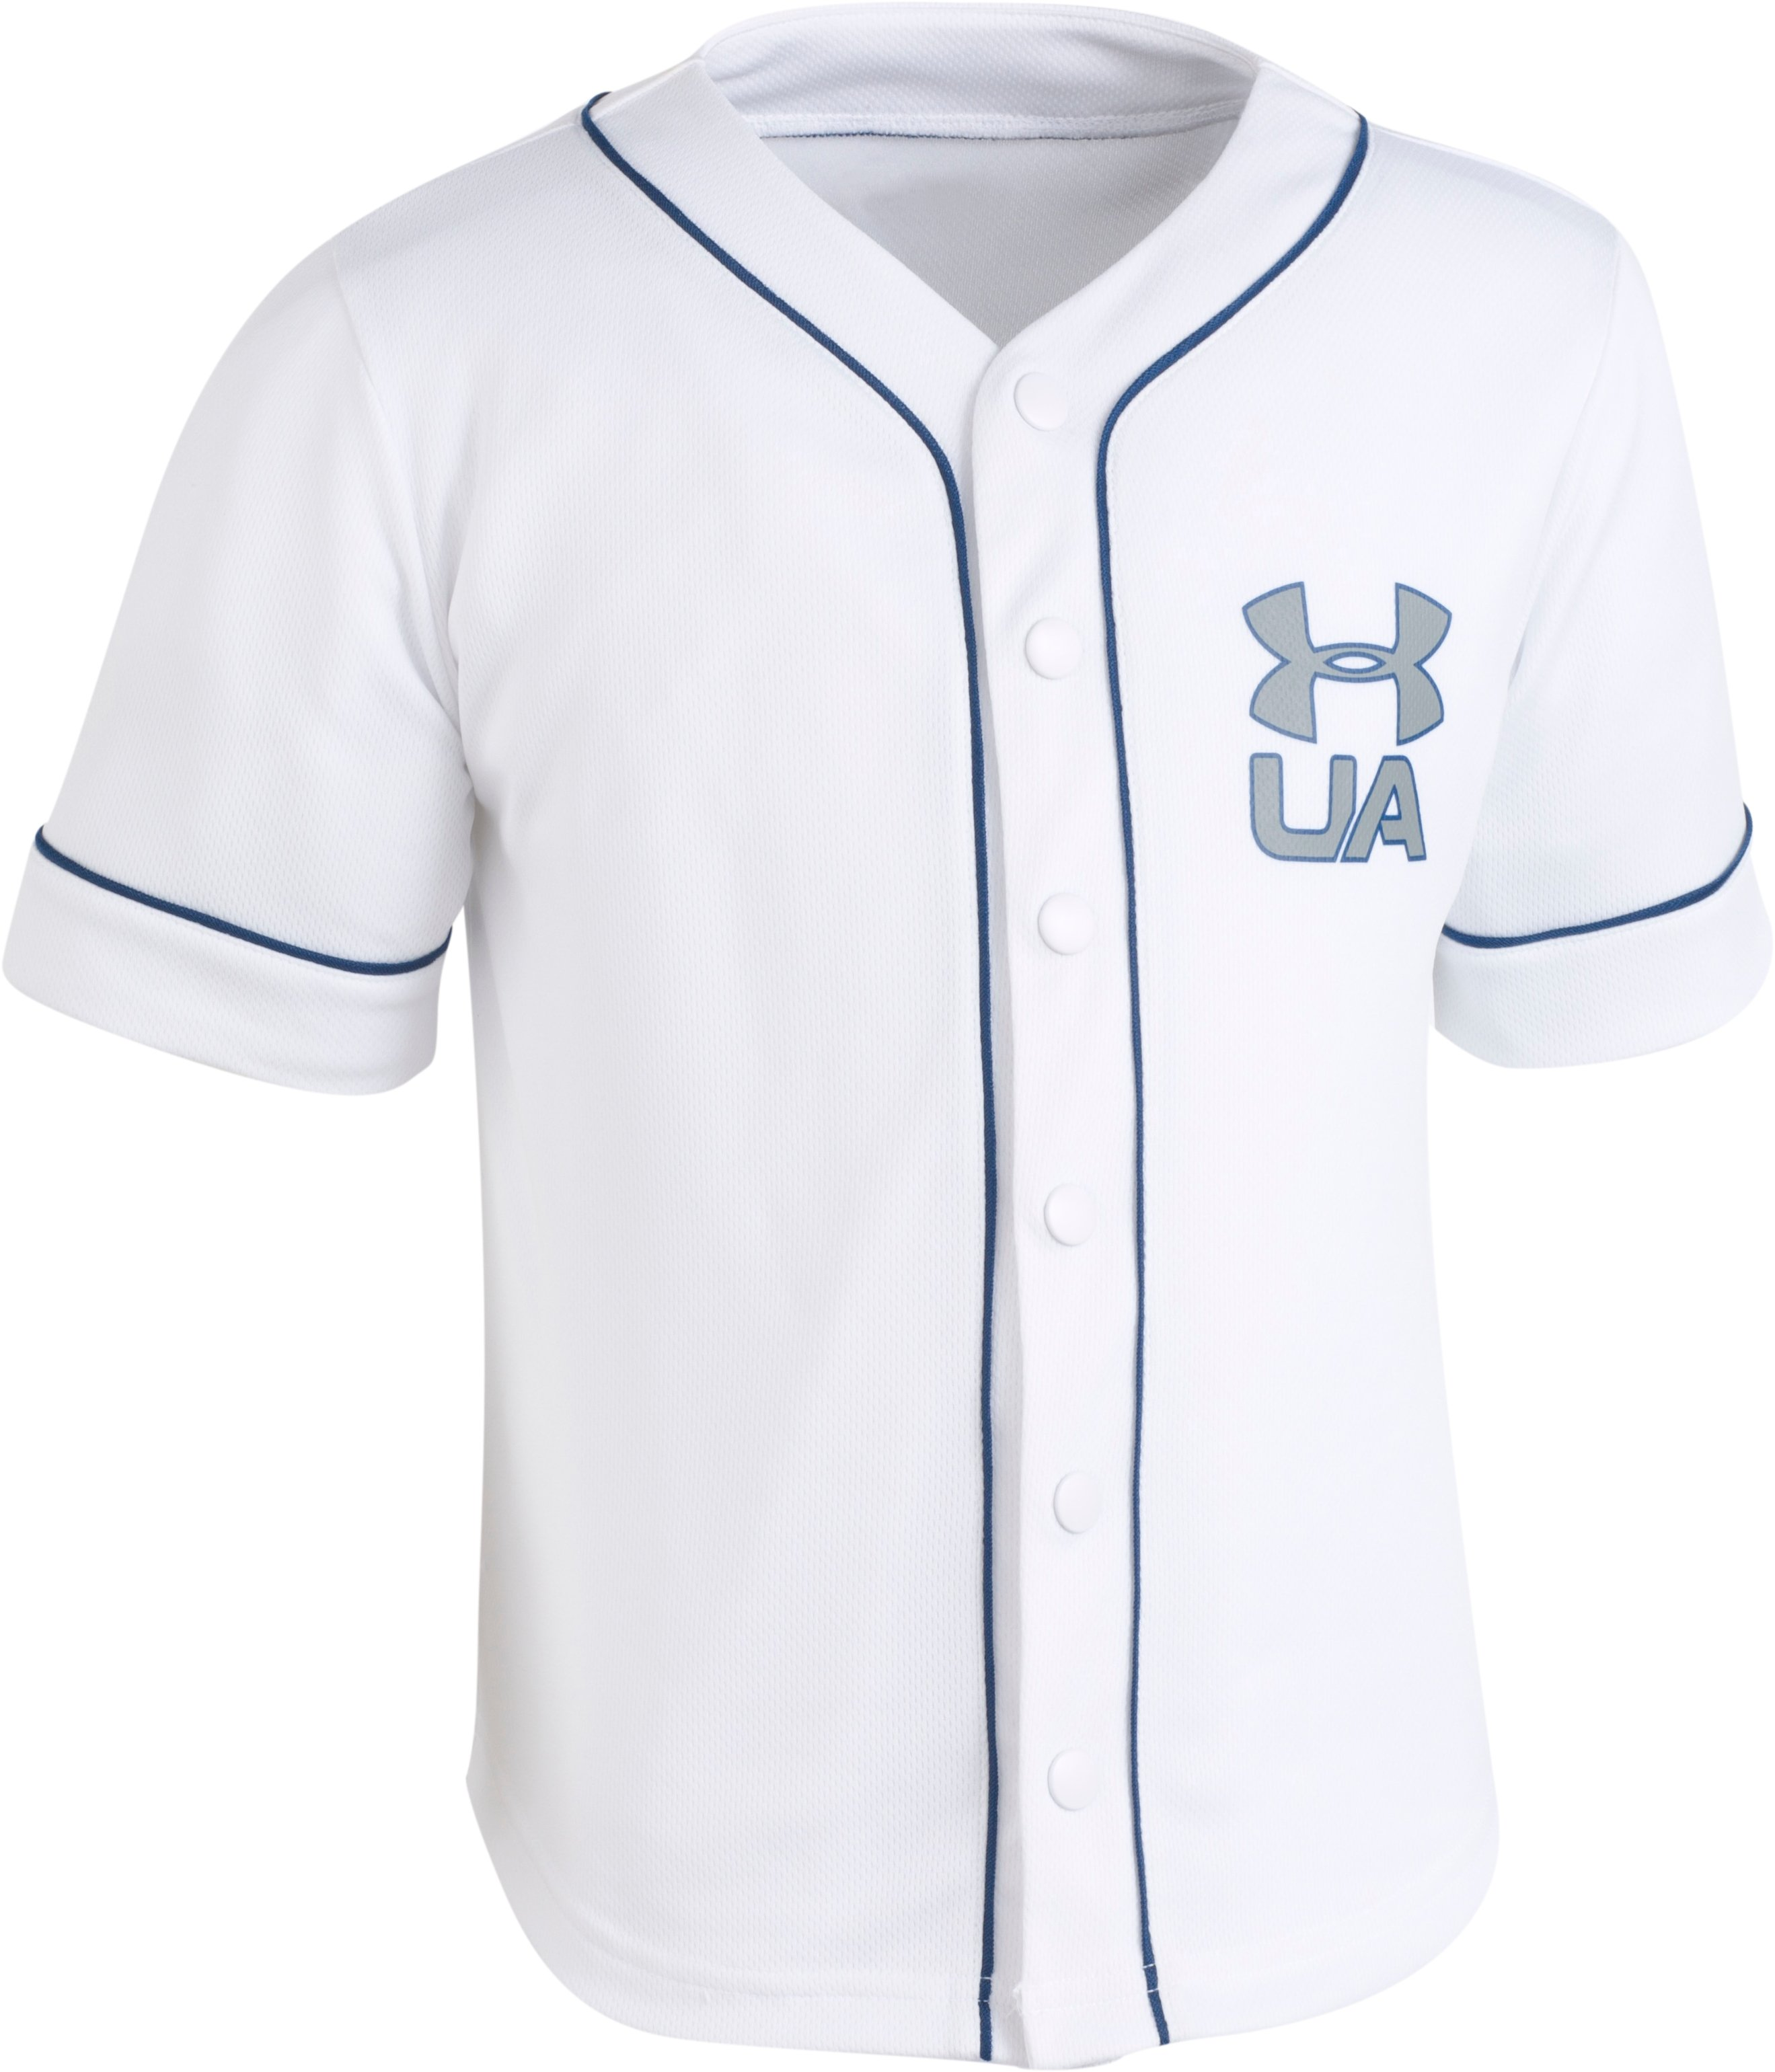 Boys' Toddler UA Homerun Baseball Jersey T-Shirt, White